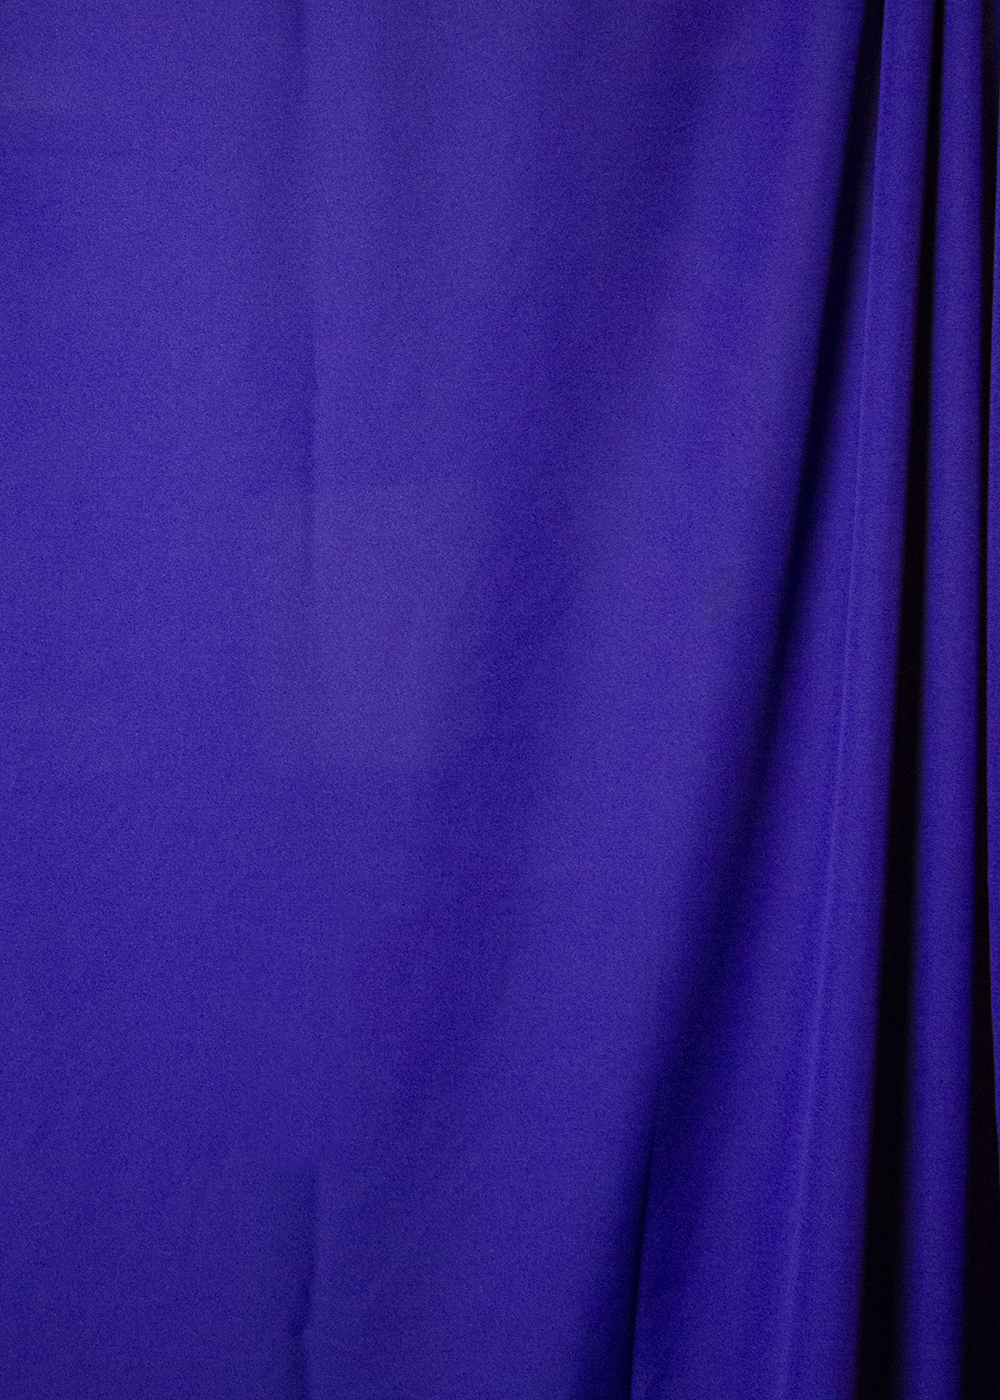 Savage Solid Eco Grape 1.52m x 2.74m Wrinkle Resistant Polyester Background